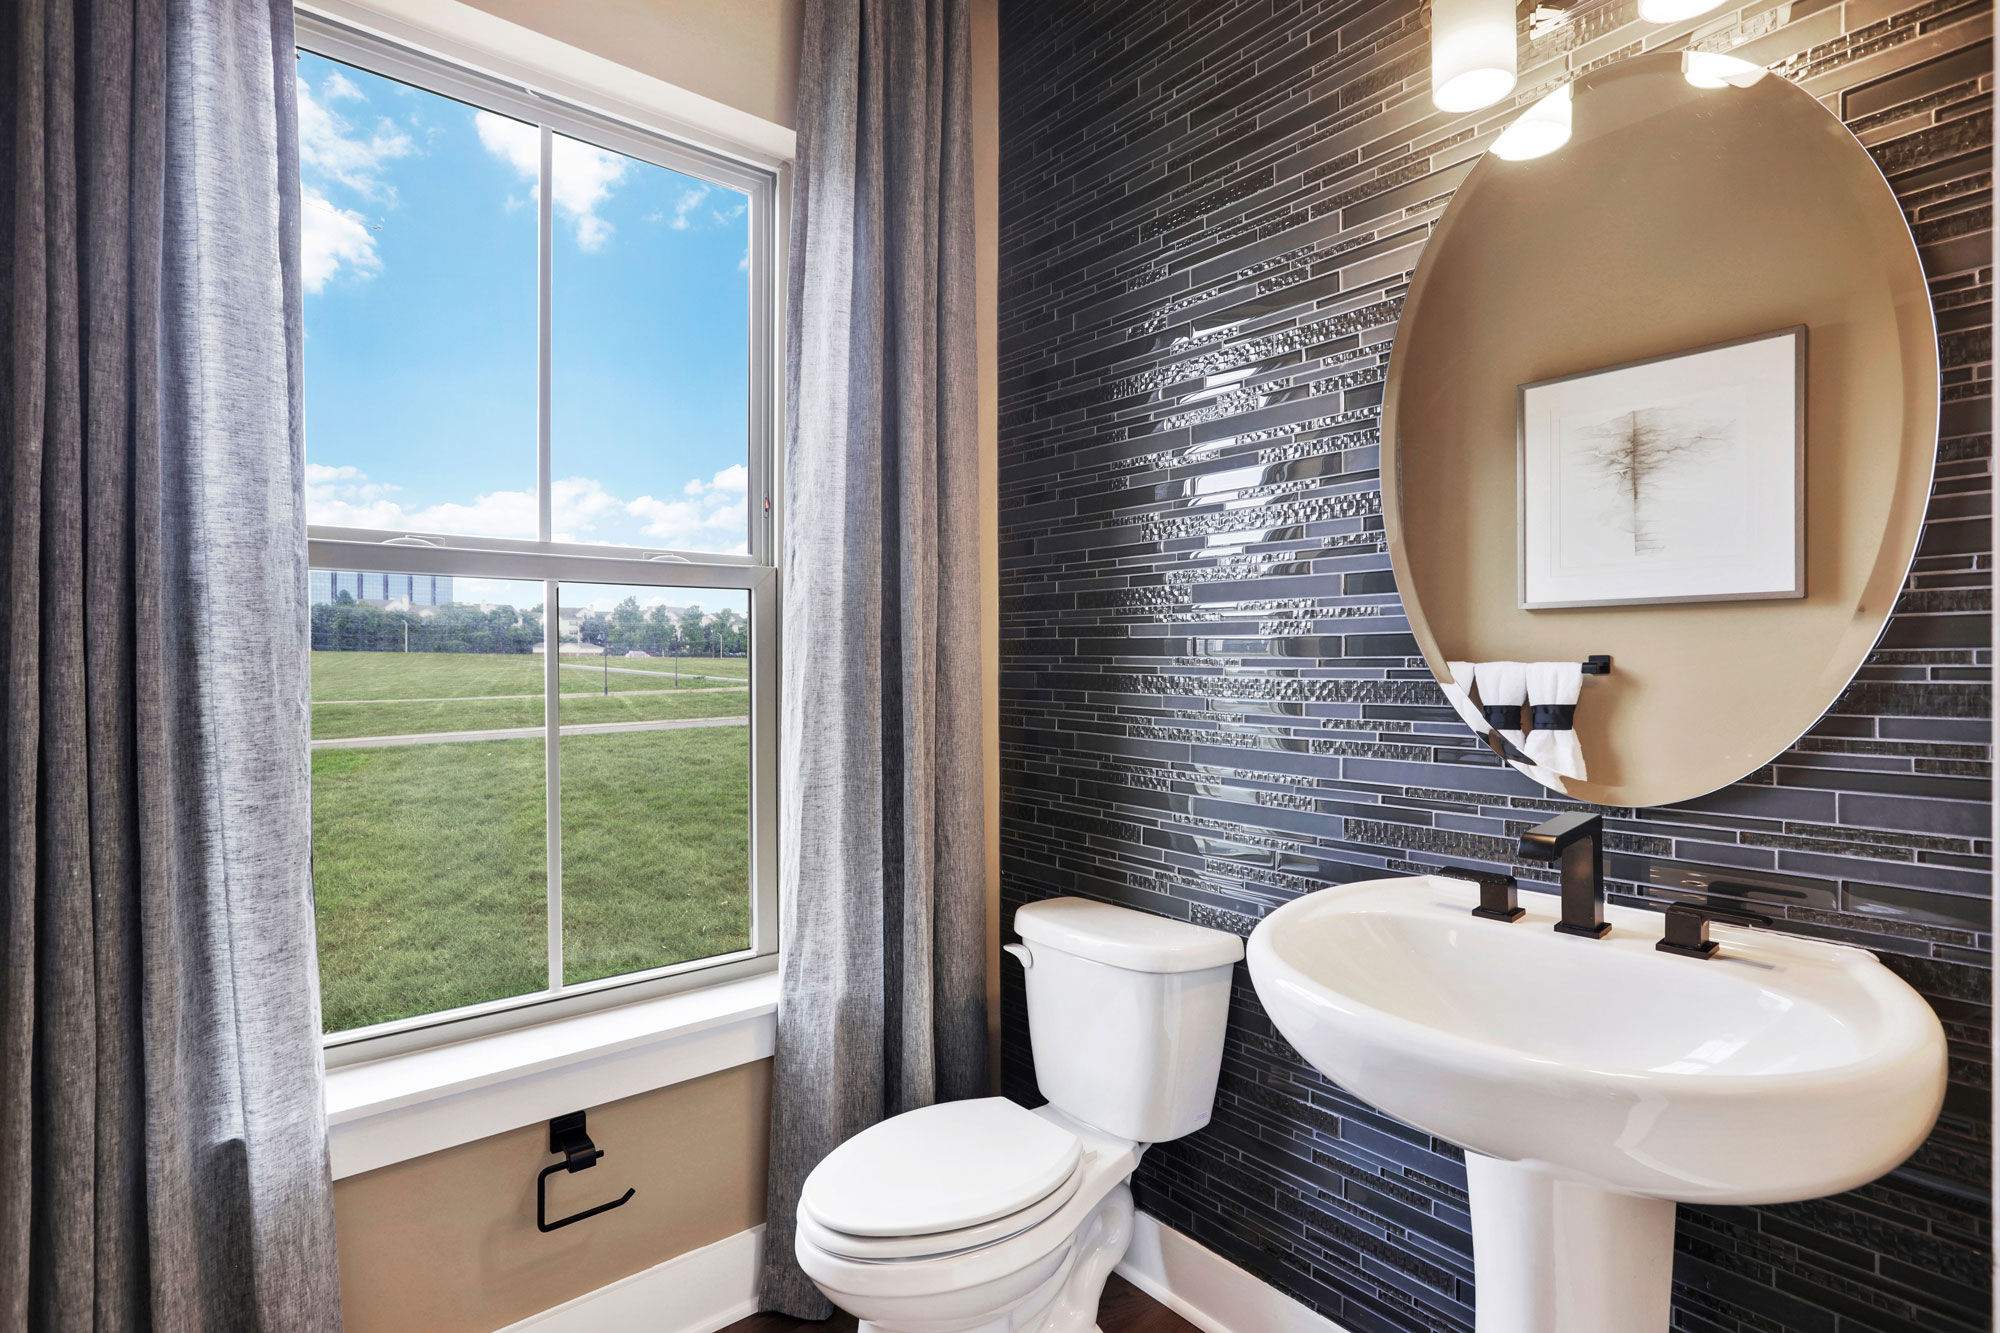 Powder Room, Elevator Townhomes in Gaithersburg, MD, Crown by Craftmark Homes